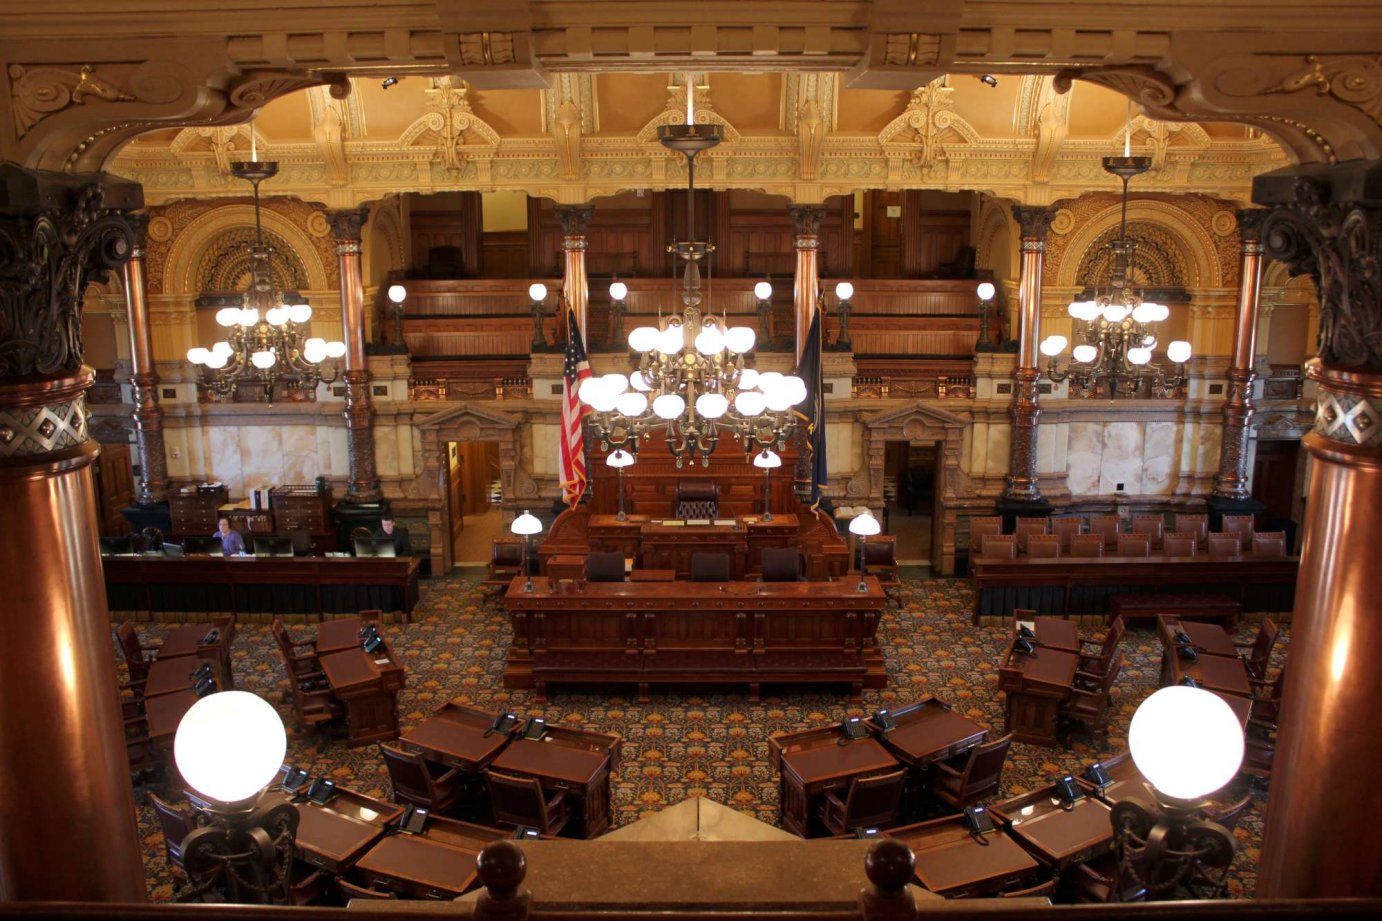 The Kansas Senate chamber. (Photo by Stephen Koranda)